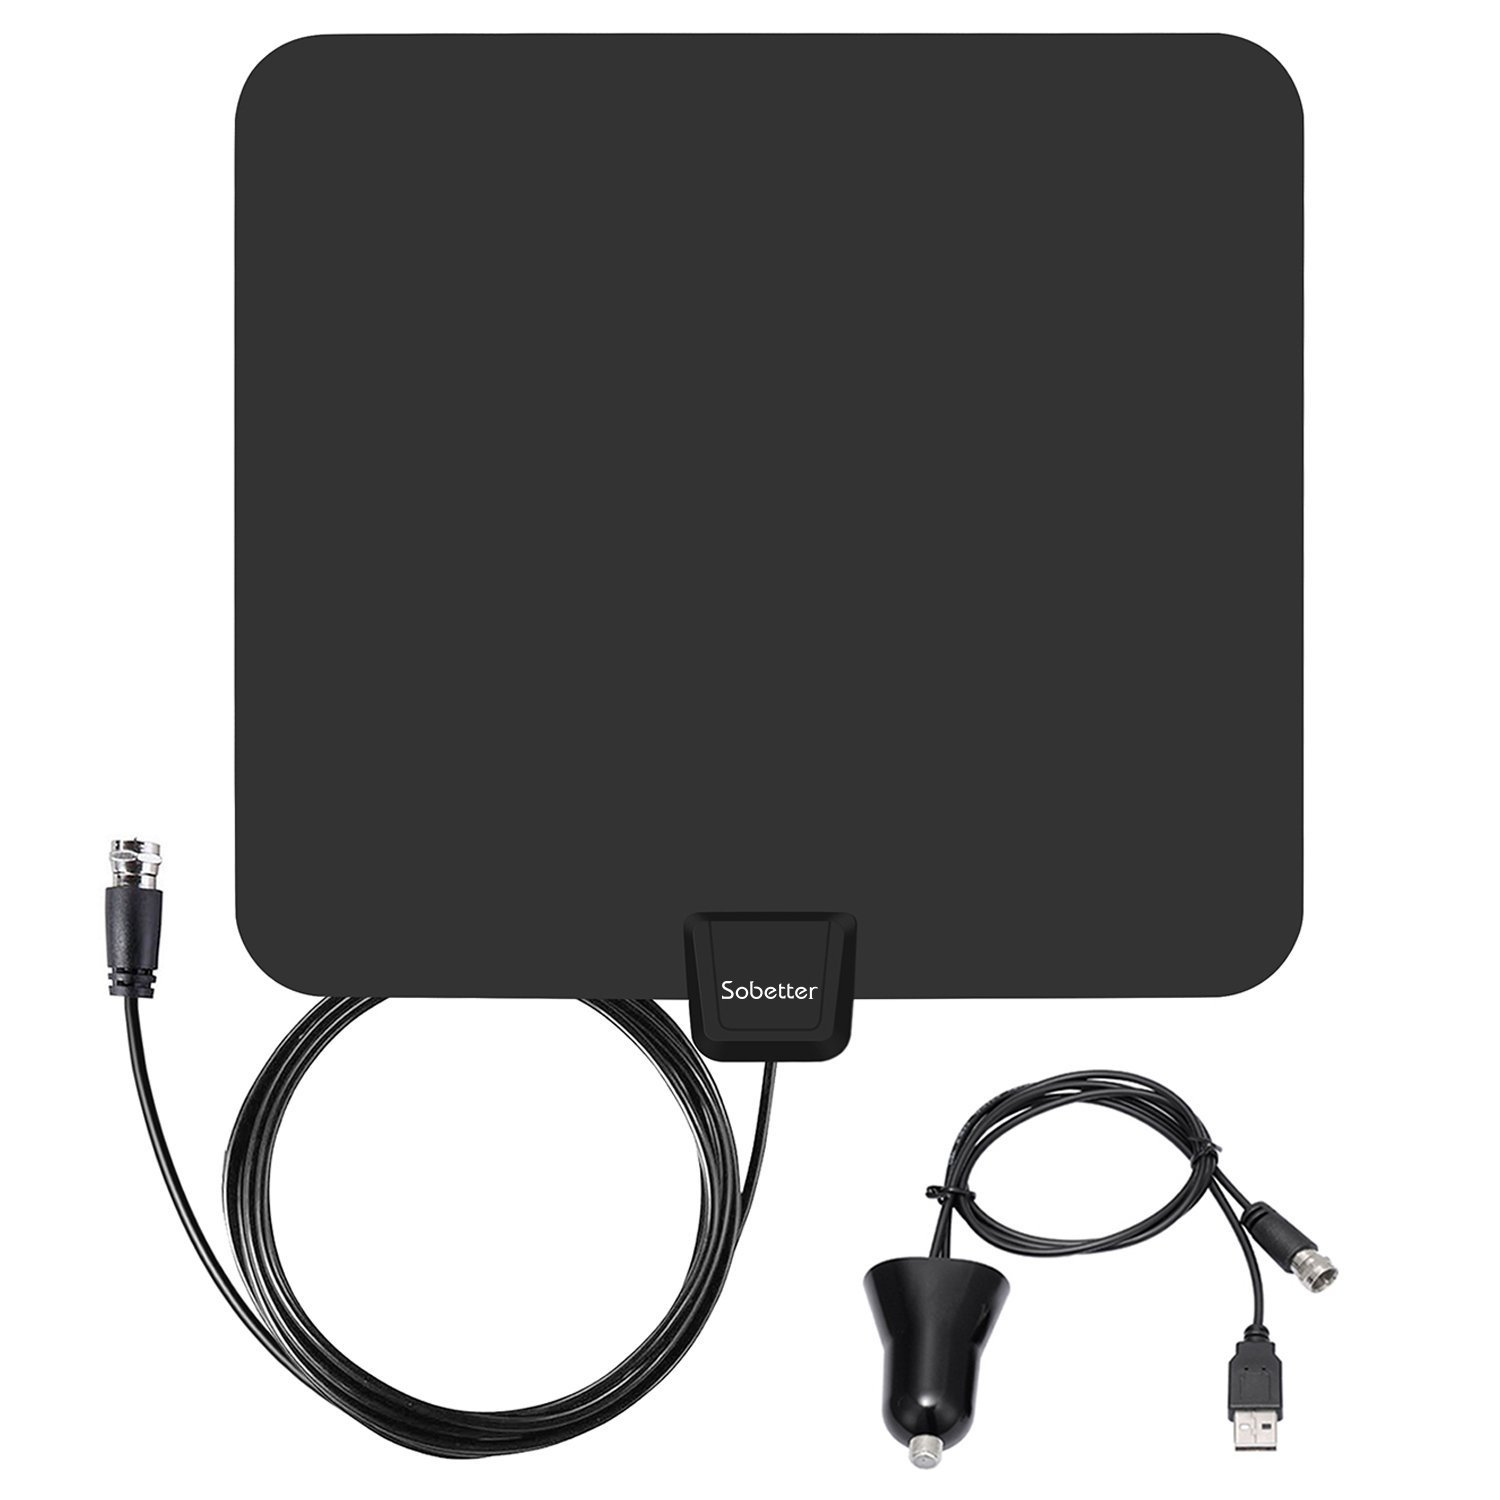 TV Antenna - Upgraded Amplified Digital HDTV Antenna 50 Miles Range Local Broadcast 4K HD VHF UHF Signal TV Channels for Television with Detachable Amplifier and Coax Cable